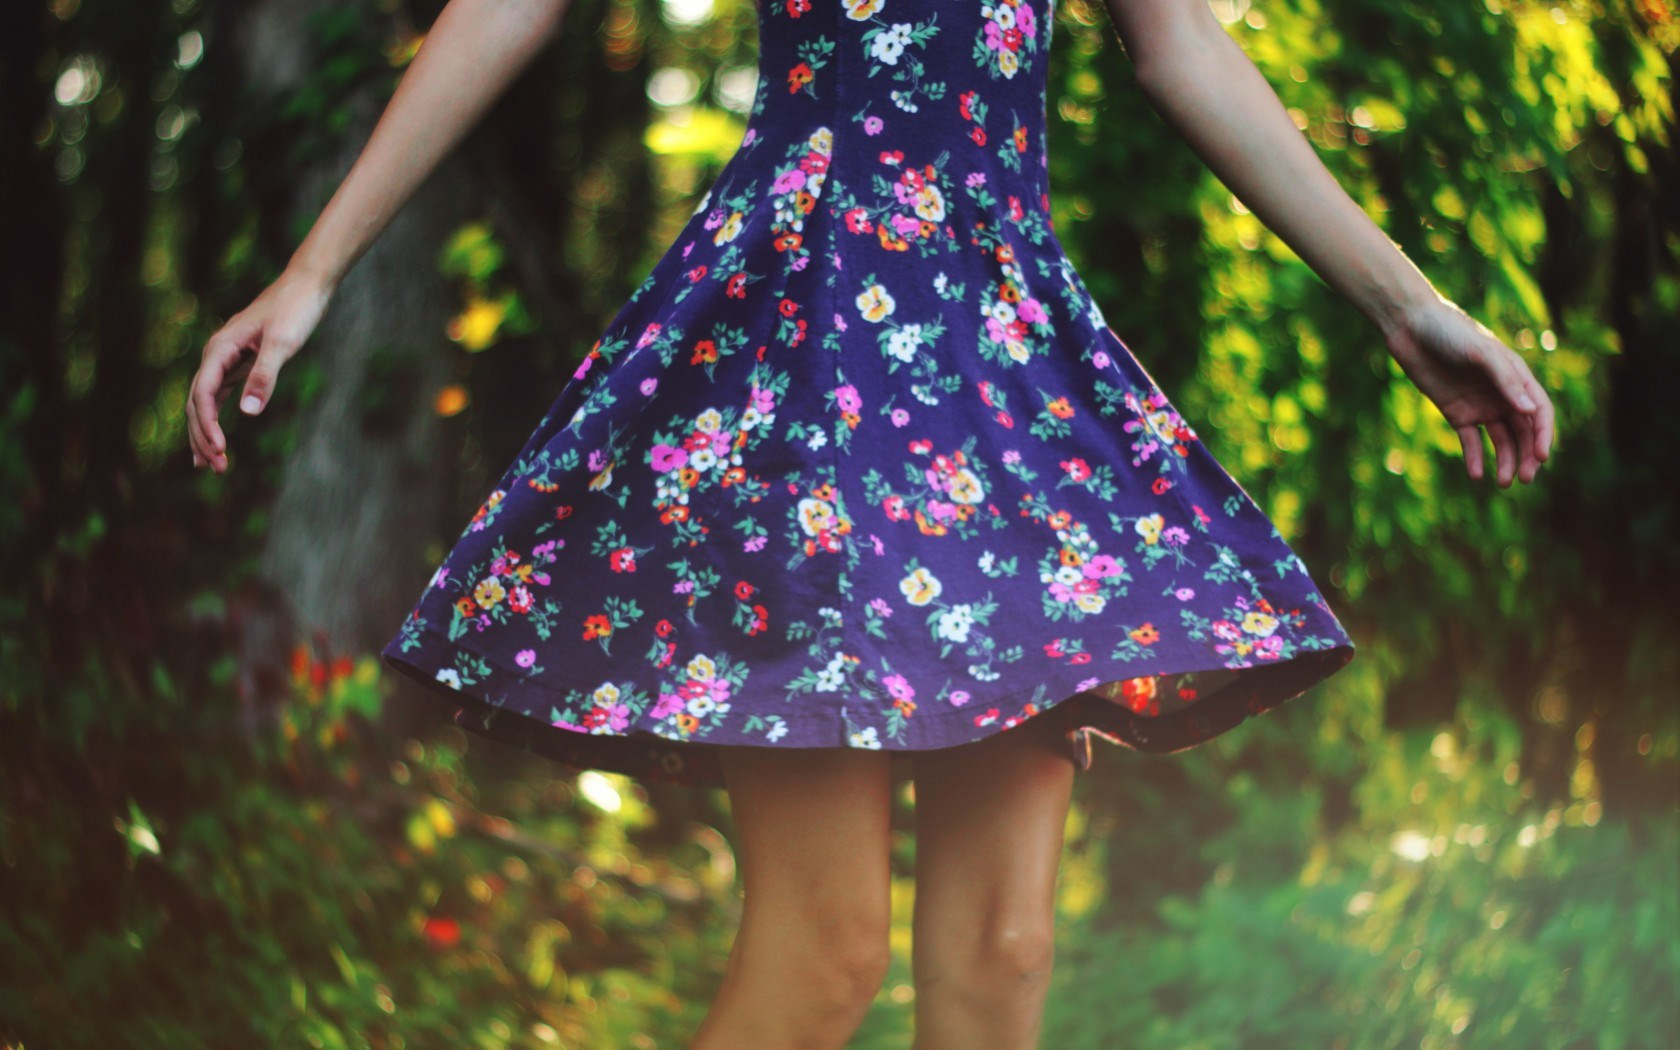 Cute Floral Dress Wallpaper